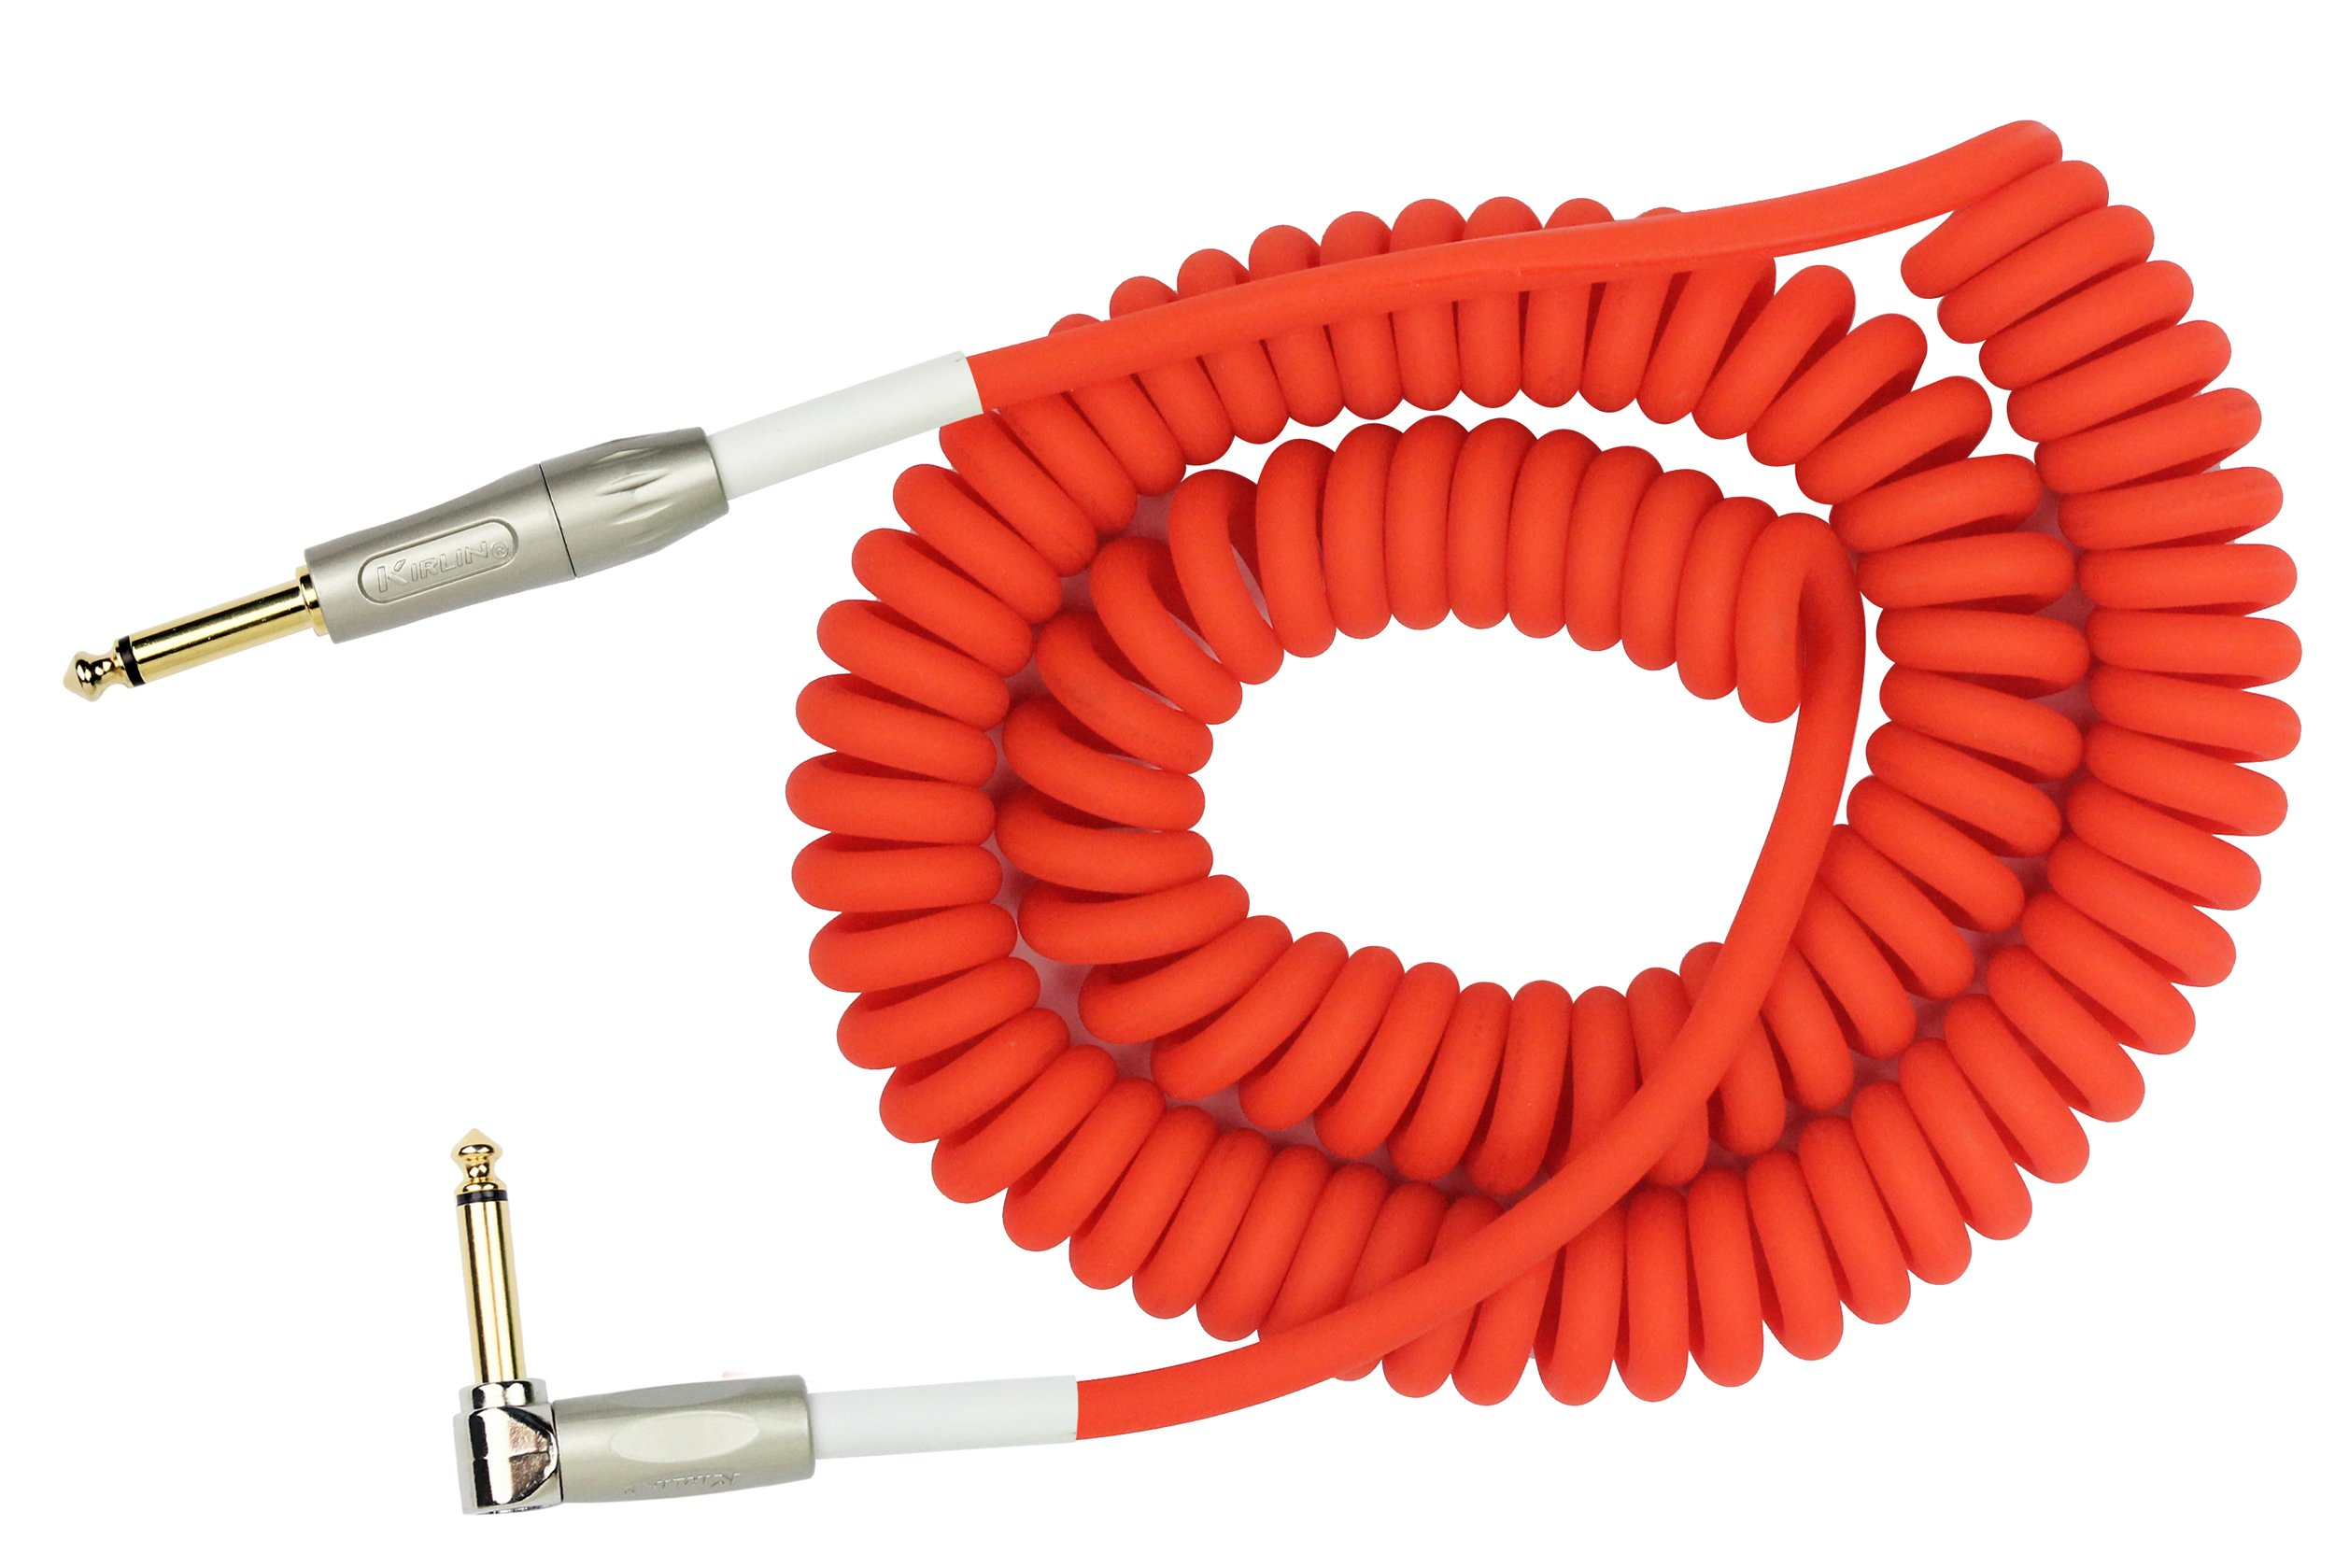 KIRLIN Cable IMK-202PFGL-30/RDF 1/4 Premium Coil Instrument Cable, 30', Red Translucent by KIRLIN, KIRLIN CABLE